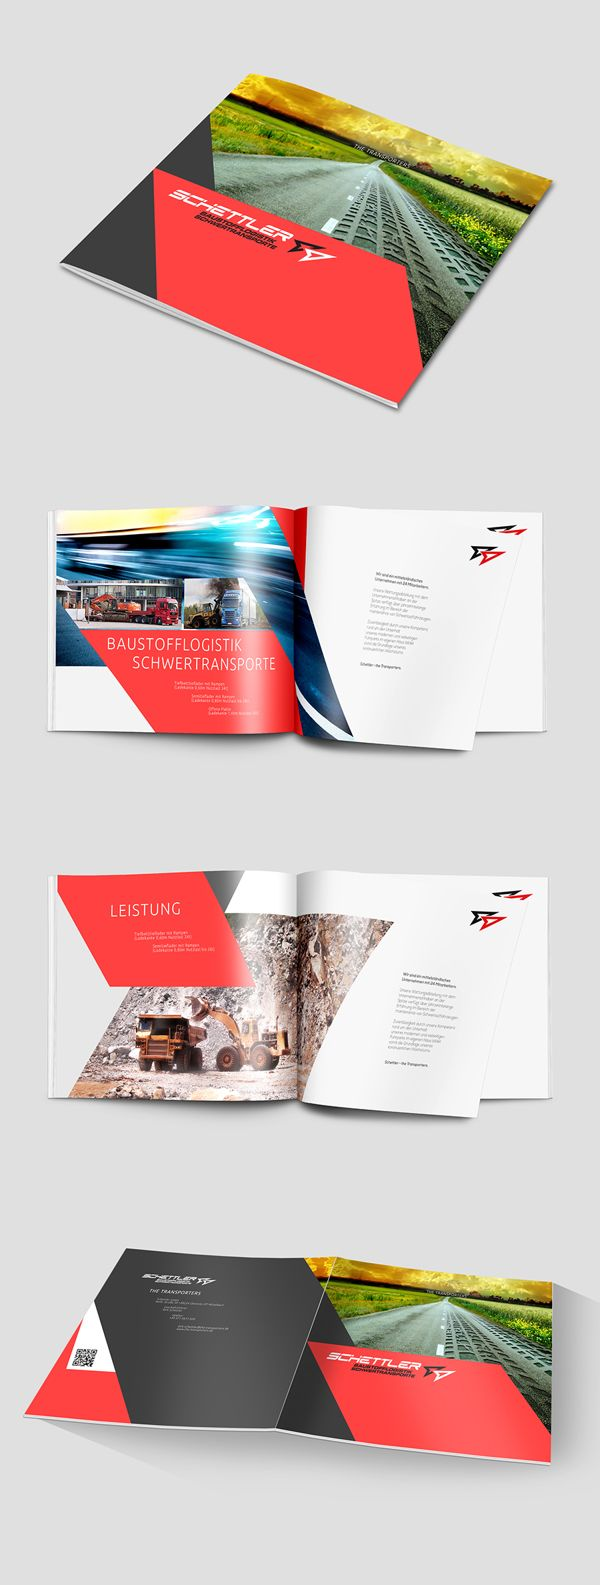 Beatuiful Concept for brochure design Best Examples of Brochure Design Projects for Inspiration